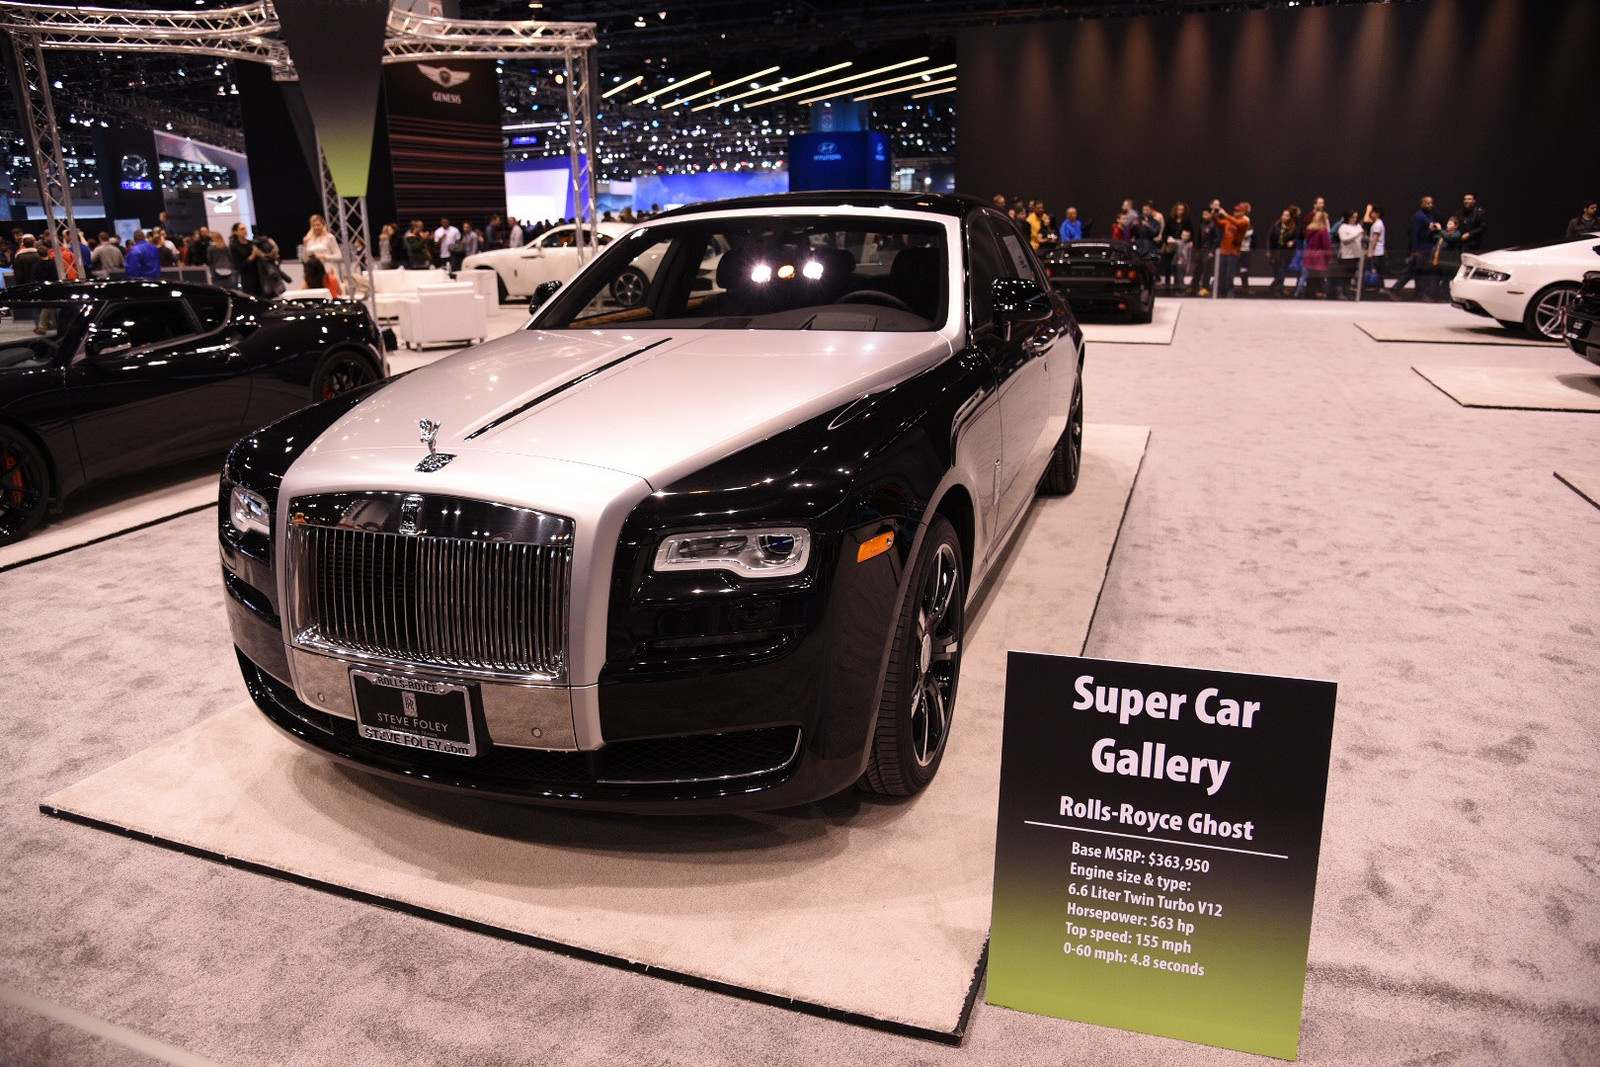 super car gallery1 Supercars at Chicago Auto Show 2016